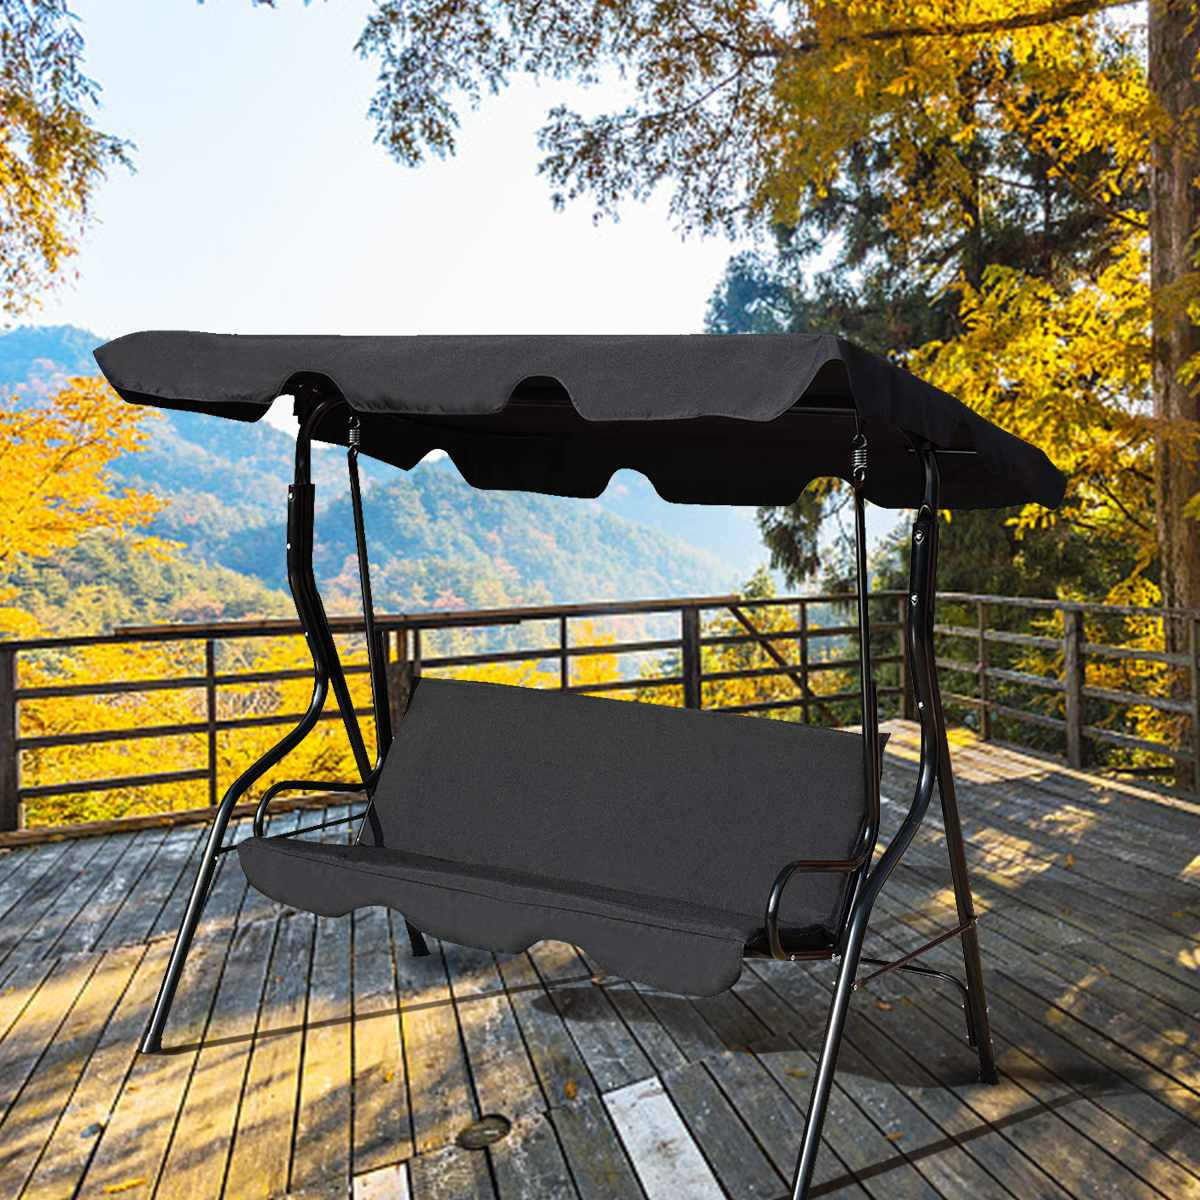 3 Seat Swing Cover Garden Cover Waterproof UV Resistant Chair Shade Dust/Sail Outdoor Courtyard Hammock Tent Swing Top Cover